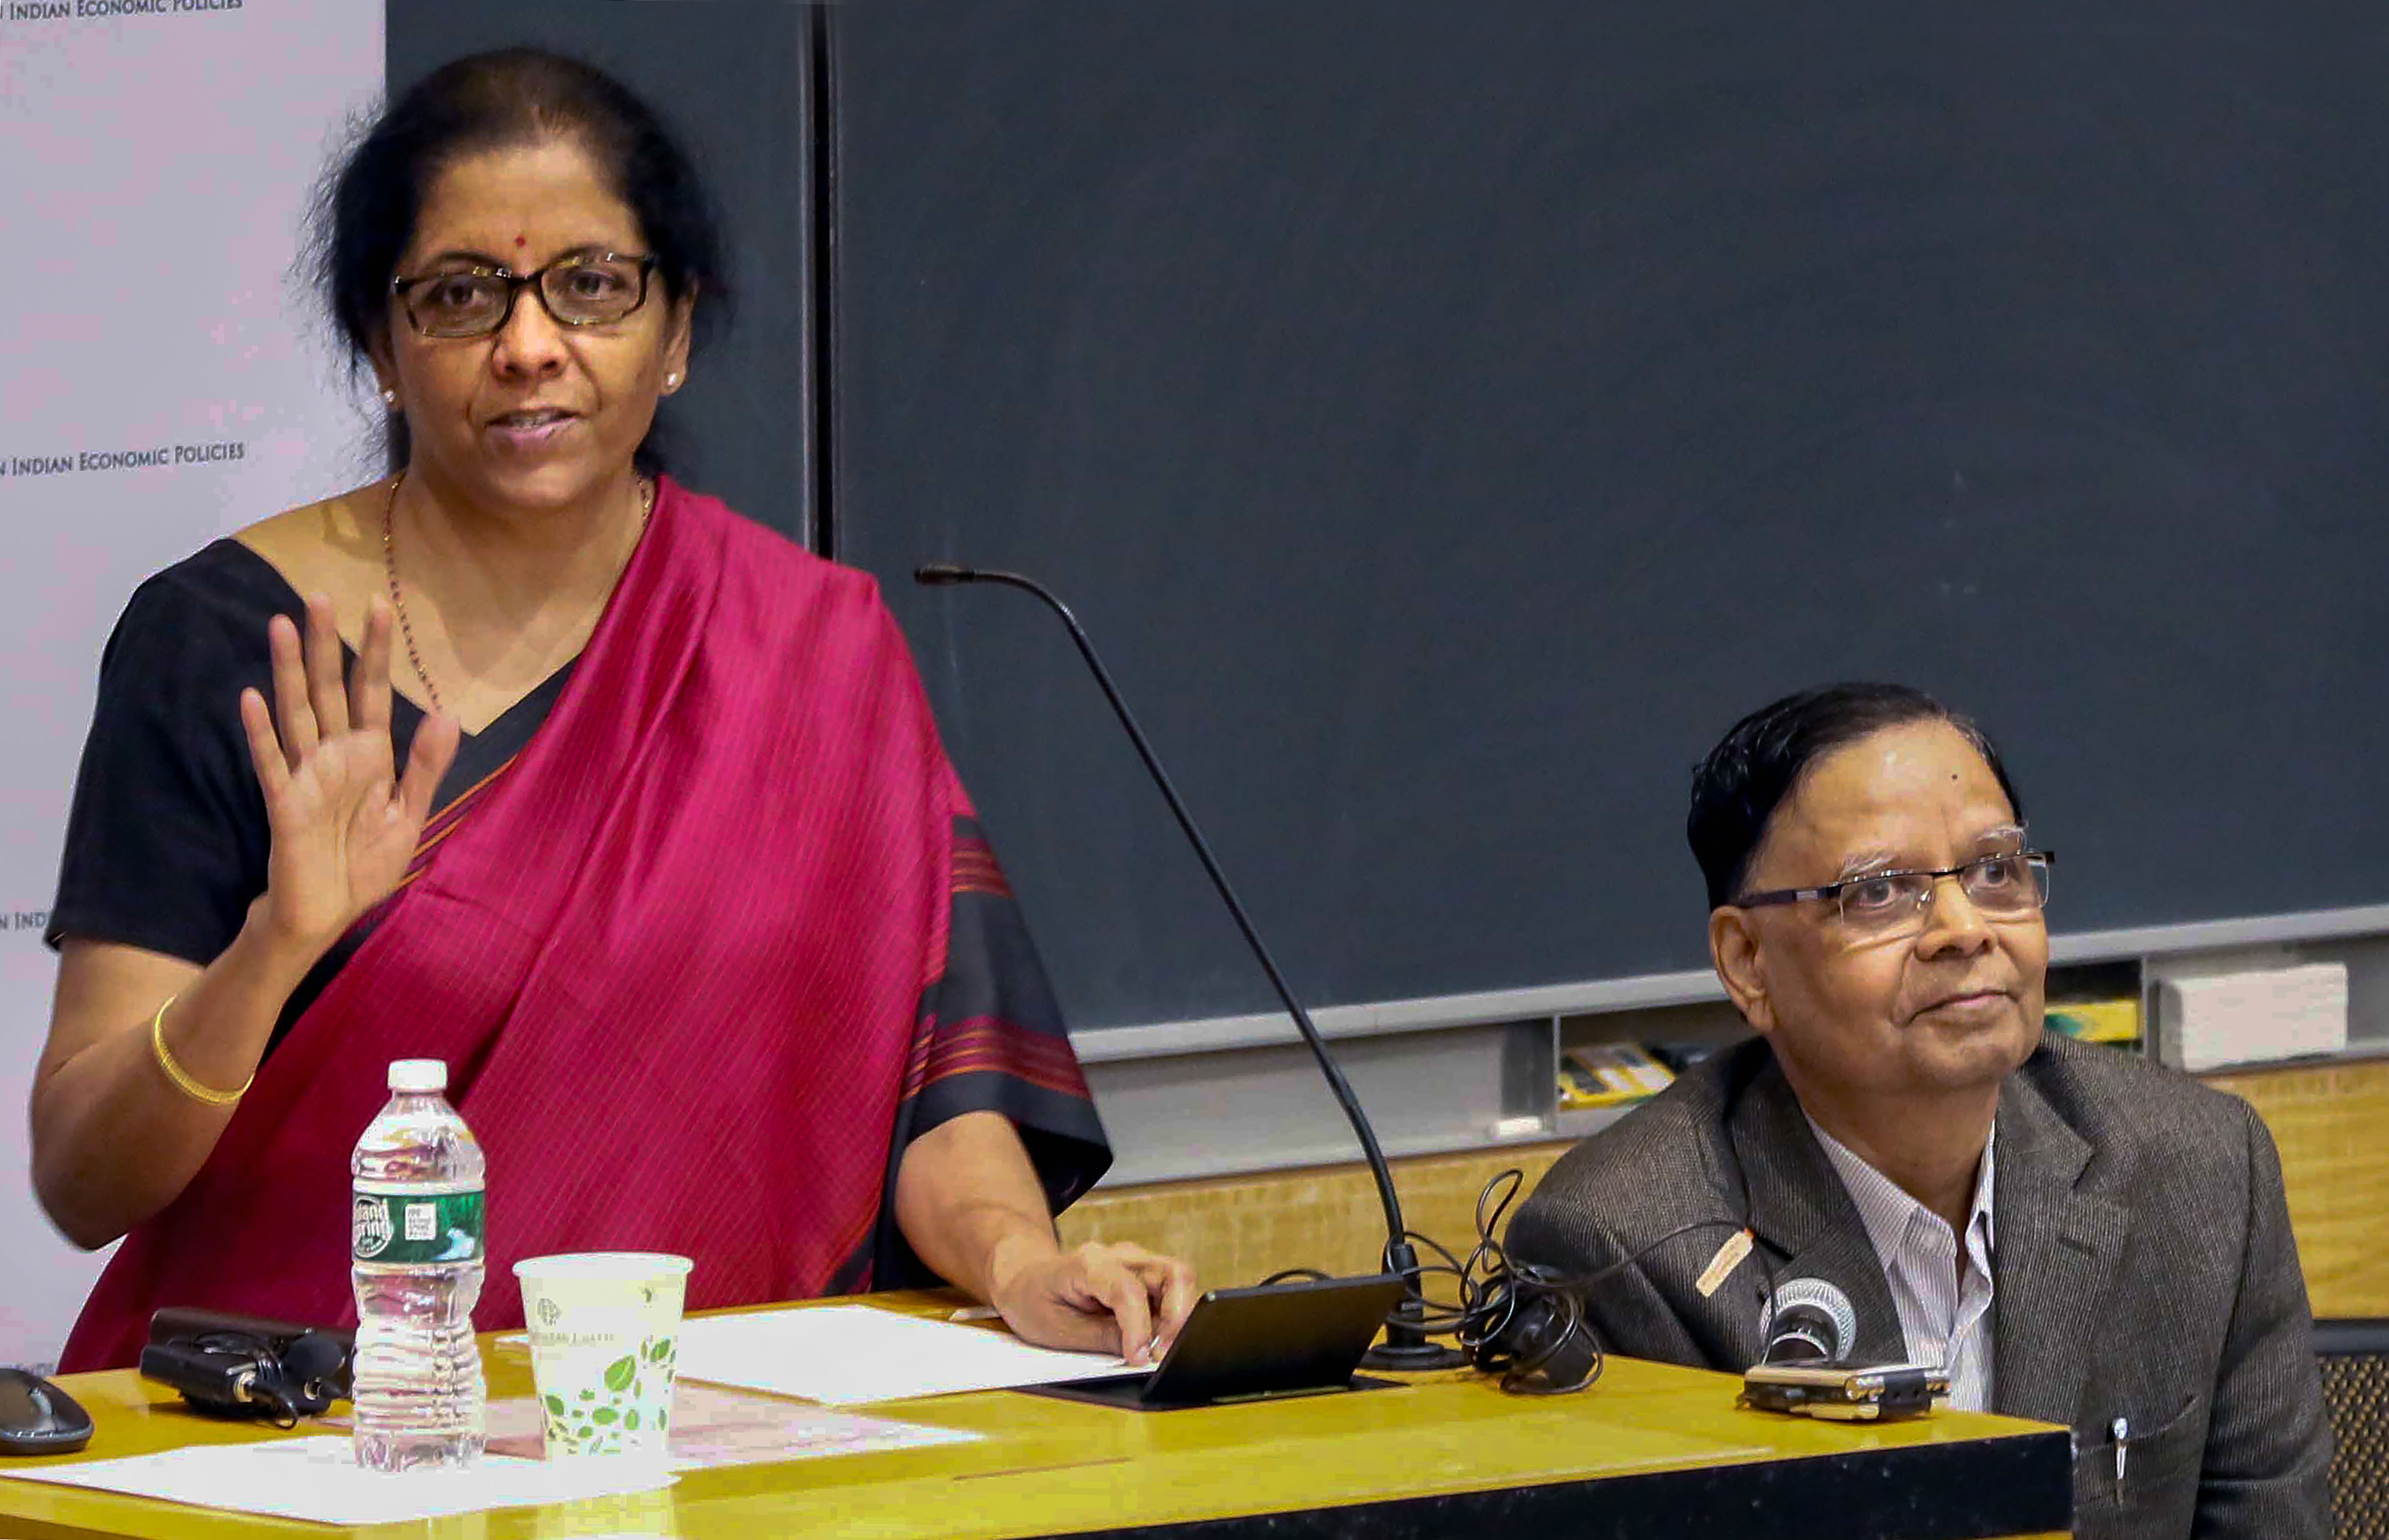 Union minister for finance and corporate affairs Nirmala Sitharaman (left) speaks on Indian Economy: Challenges and Prospects at Columbia University in New York on October 15.